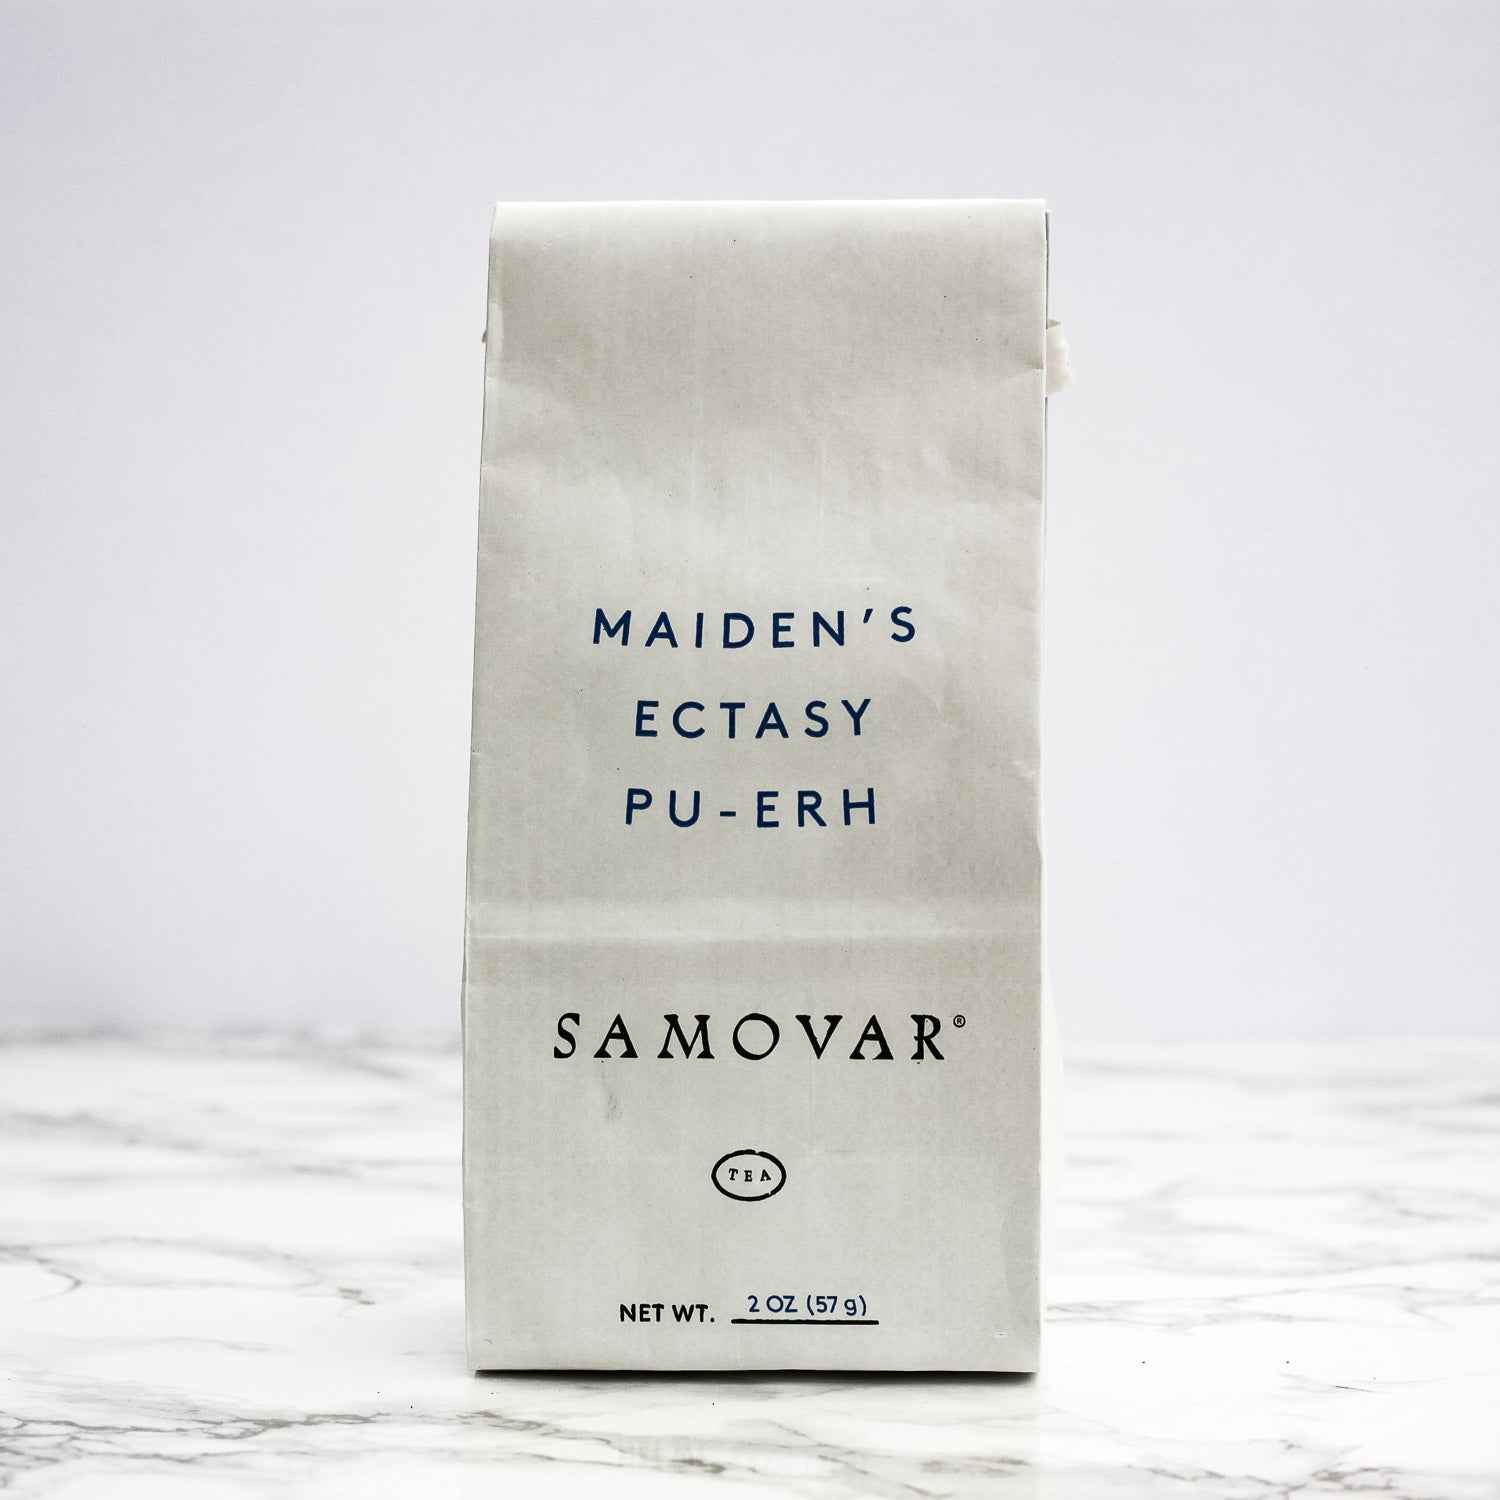 Maiden's Ectasy Pu-Erh Loose Leaf Tea - The Foodocracy